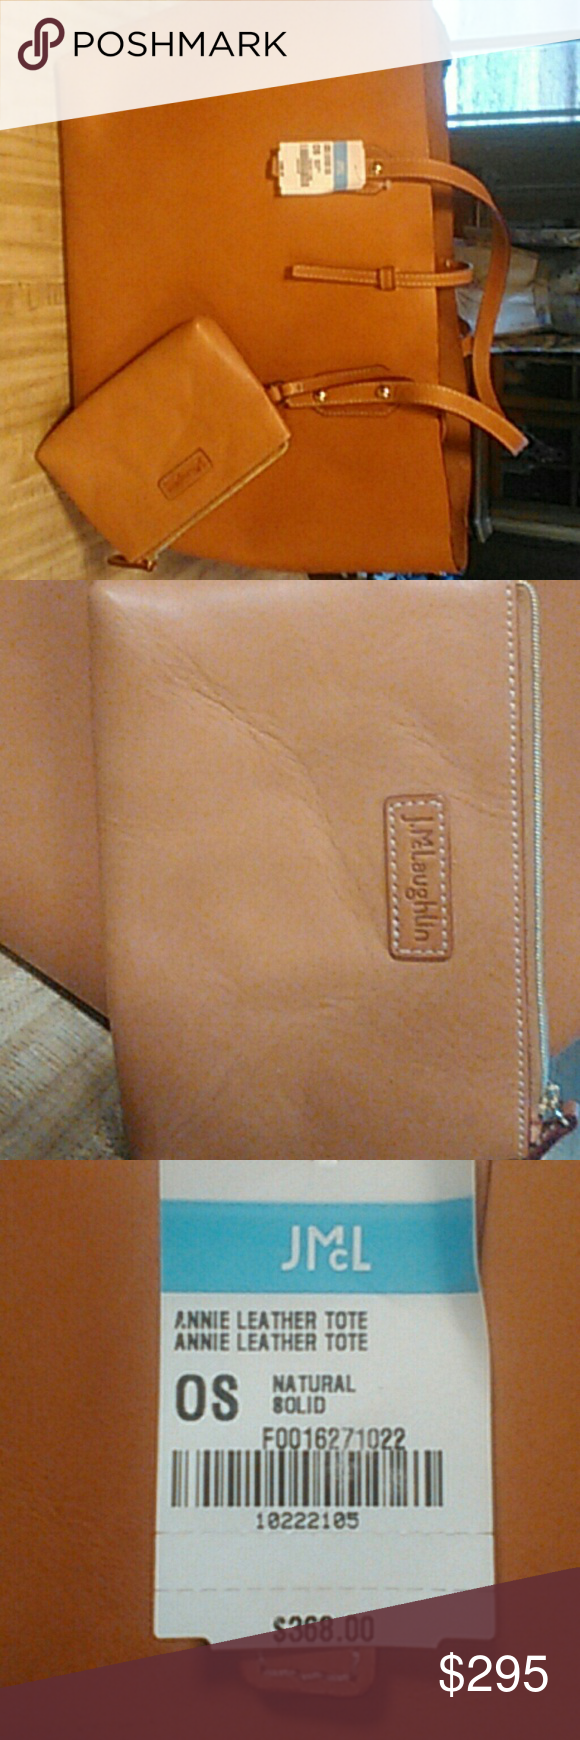 b96b947c44 A.McLaughlin Annie tote Brand new. Smells like expensive leather. Never  used. 18